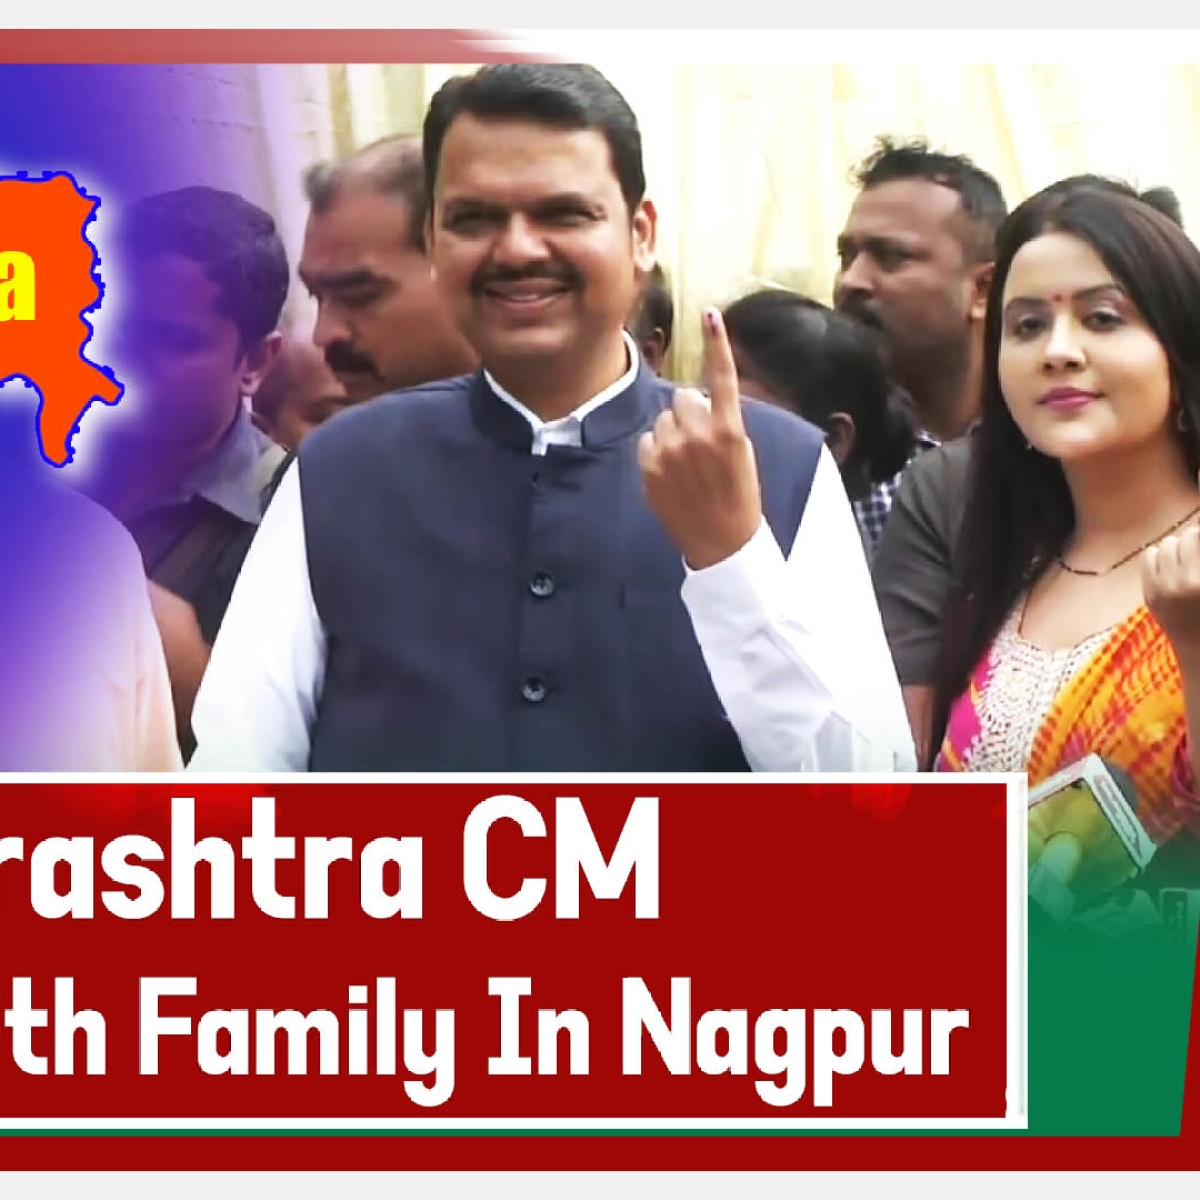 Maharashtra Chief Minister Devendra Fadnavis cast vote with family in Nagpur